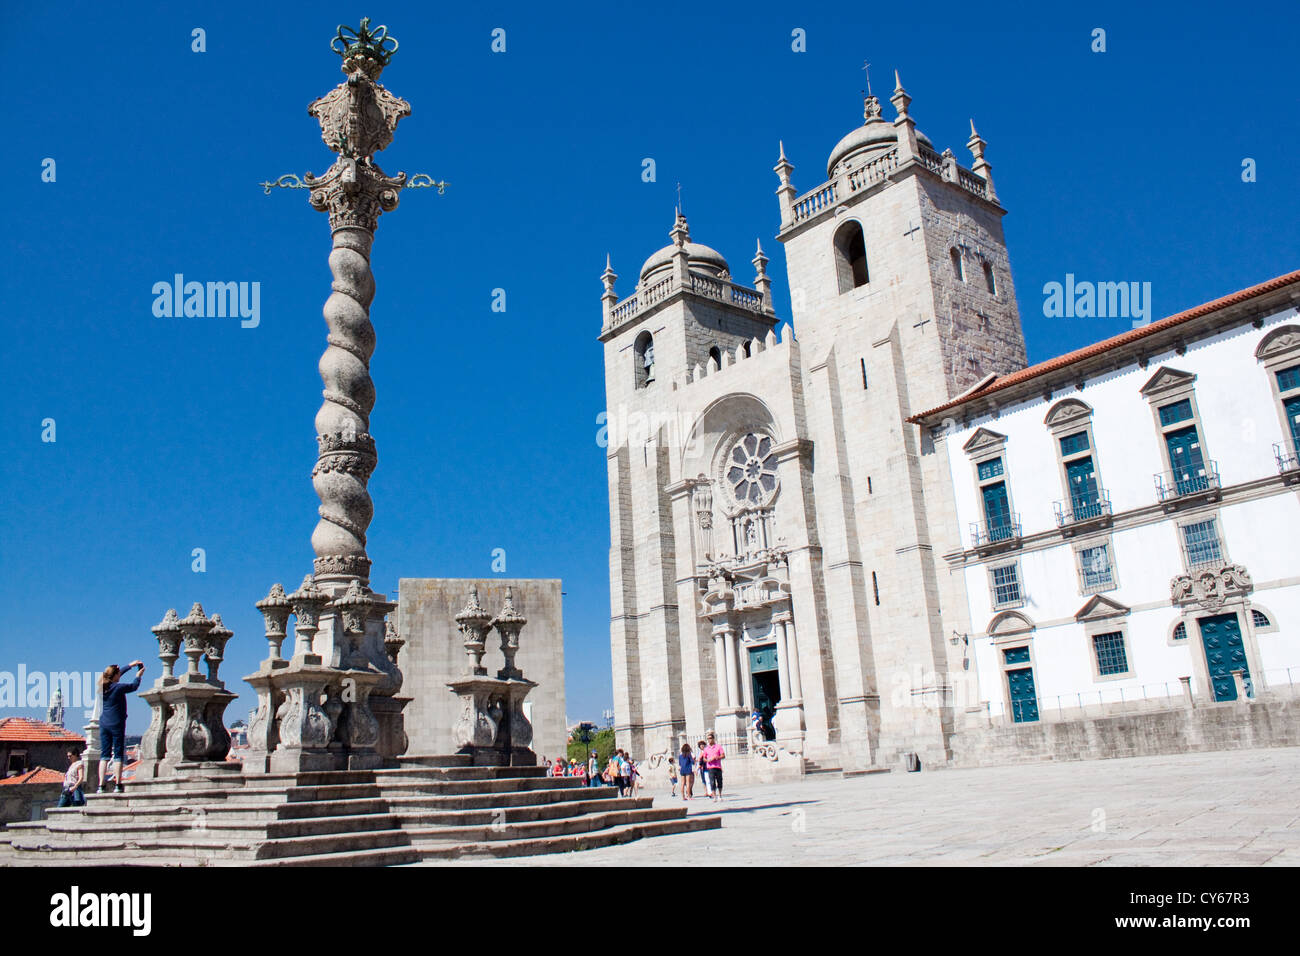 Front facade of the Sé Cathedral in Oporto, Portugal - Stock Image